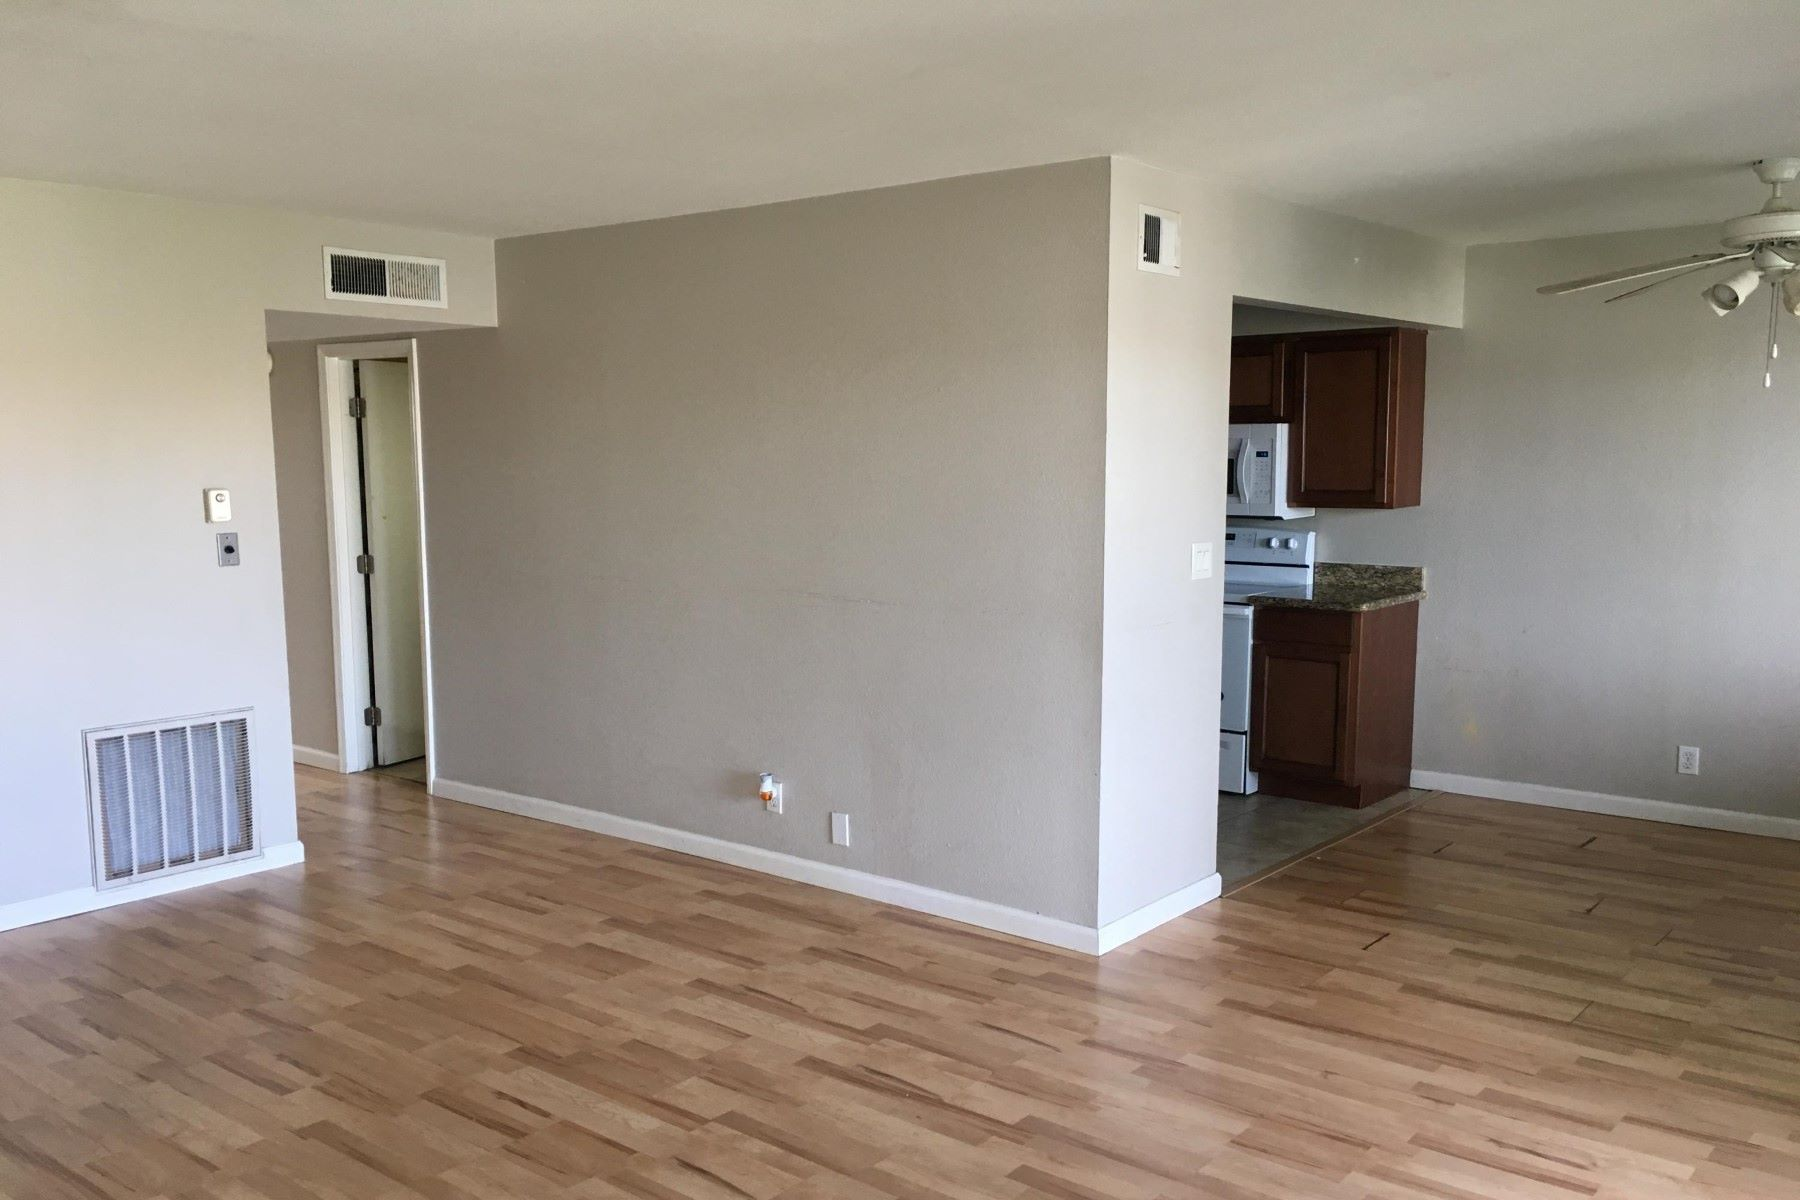 Apartment for Rent at Great condo in park-like oasis 1702 W TUCKEY LN 212 Phoenix, Arizona 85015 United States